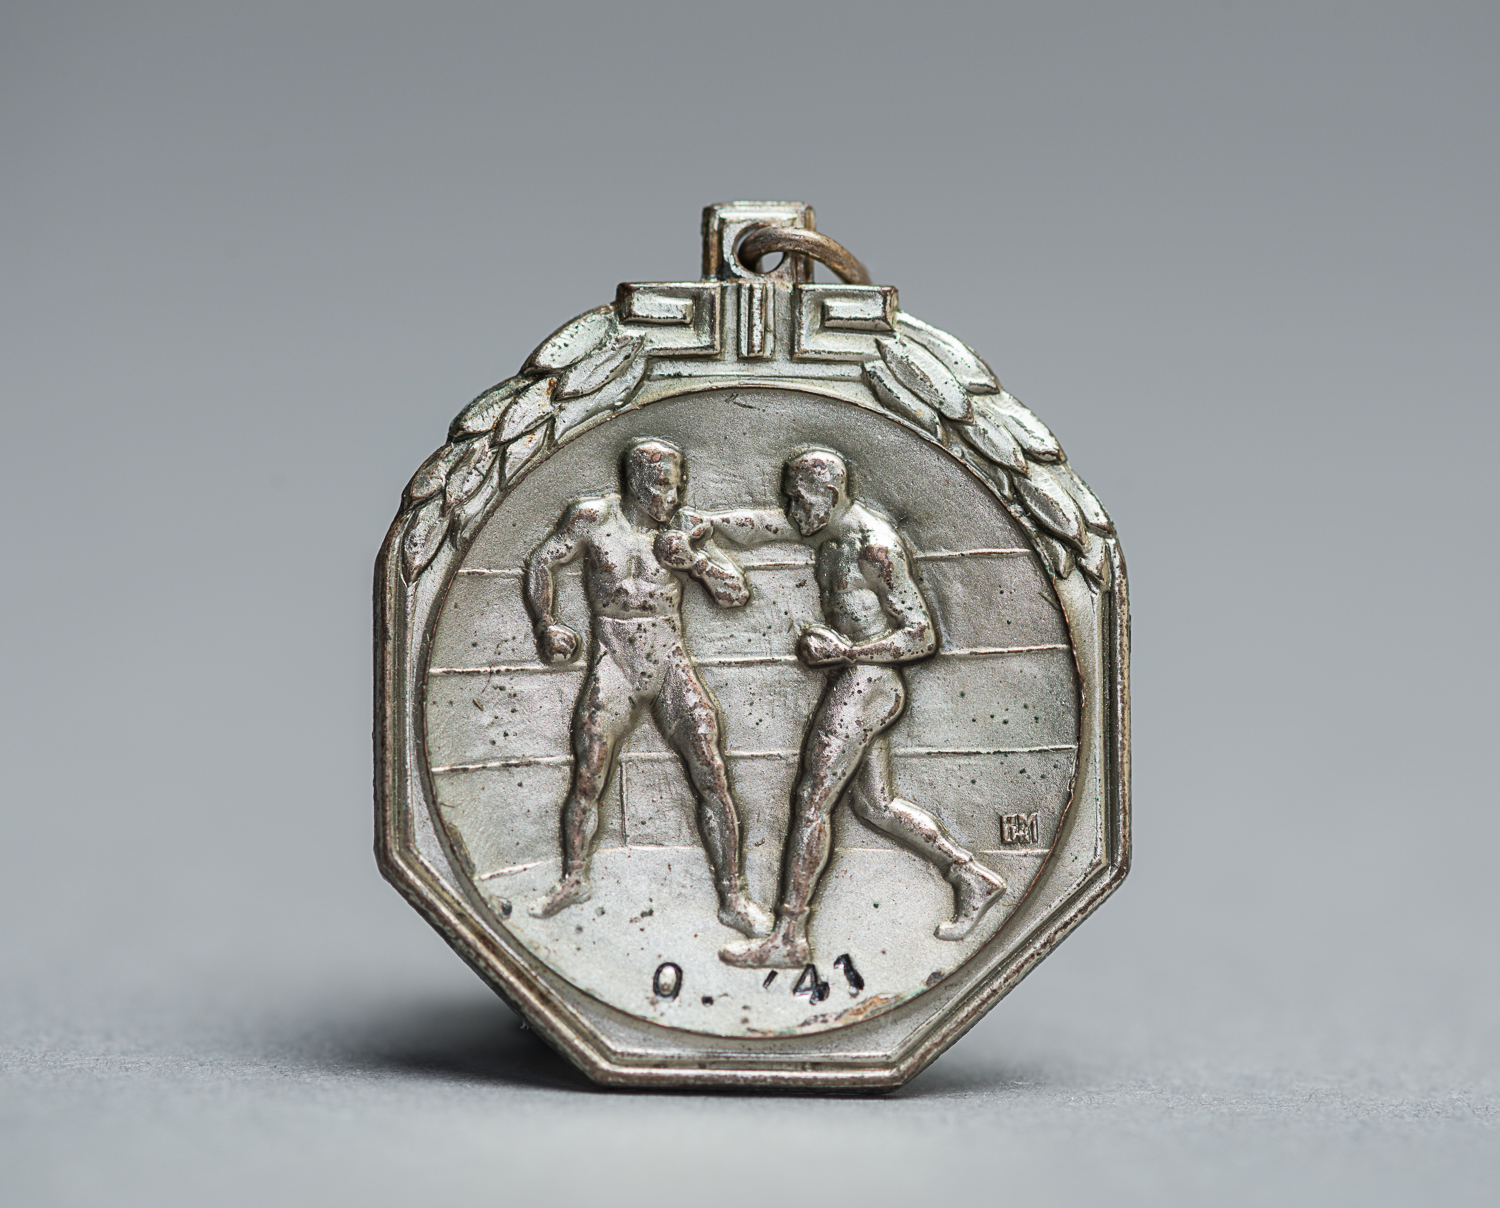 This medal was won by professional boxer David Kropveld in 1941. (Photo: Peter Berra)